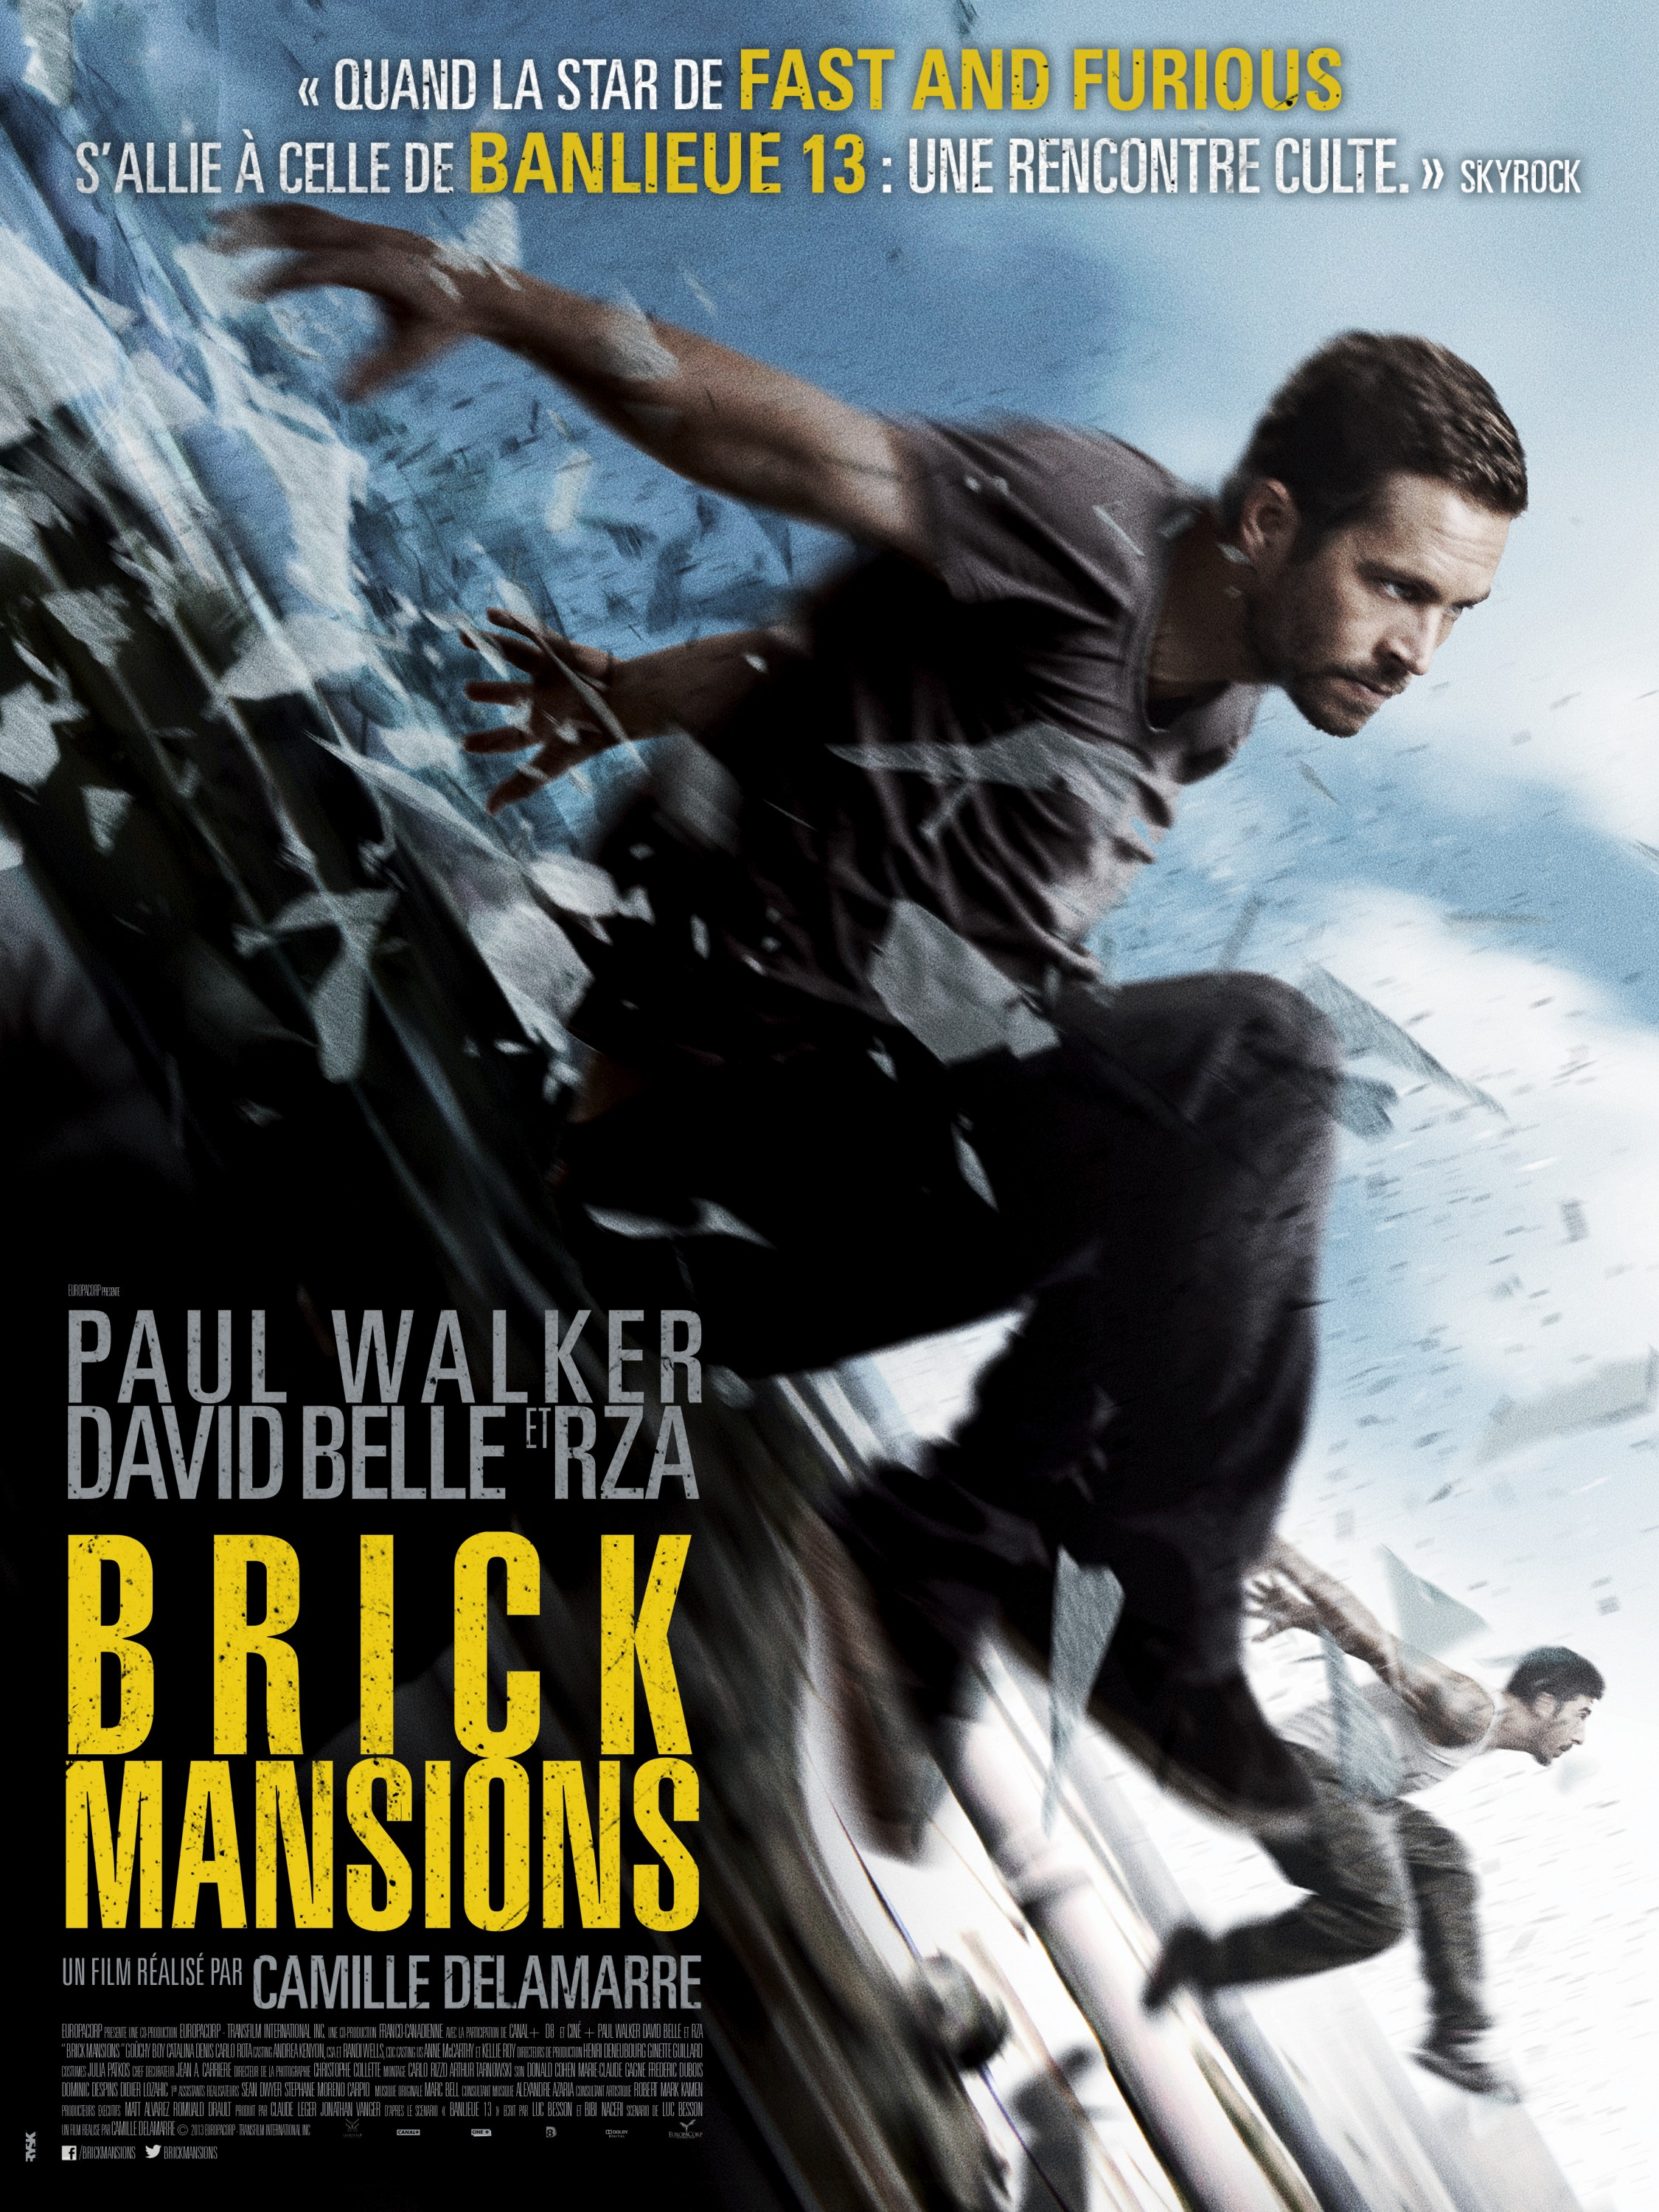 Brick Mansions-Official Poster Banner PROMO POSTER XLG-12MARCO2014-02